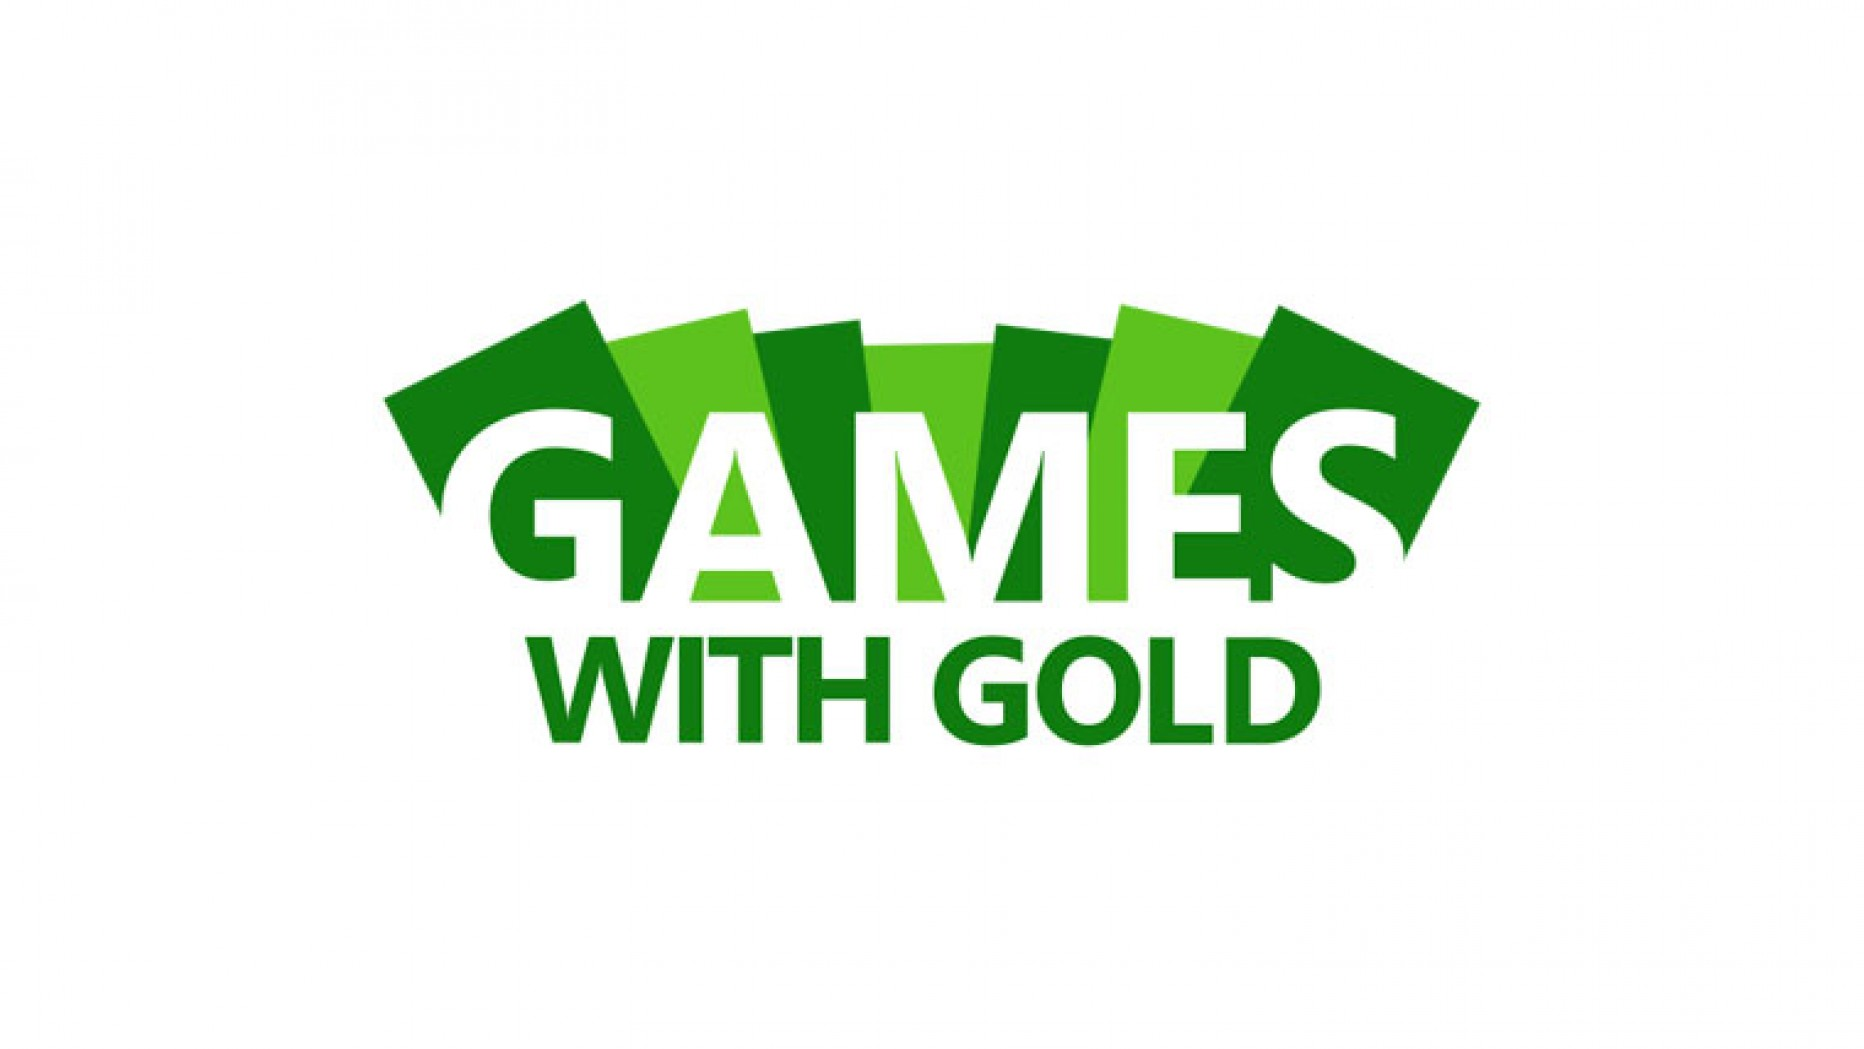 Xbox 'Games with Gold' August 2017 lineup: Bayonetta and more